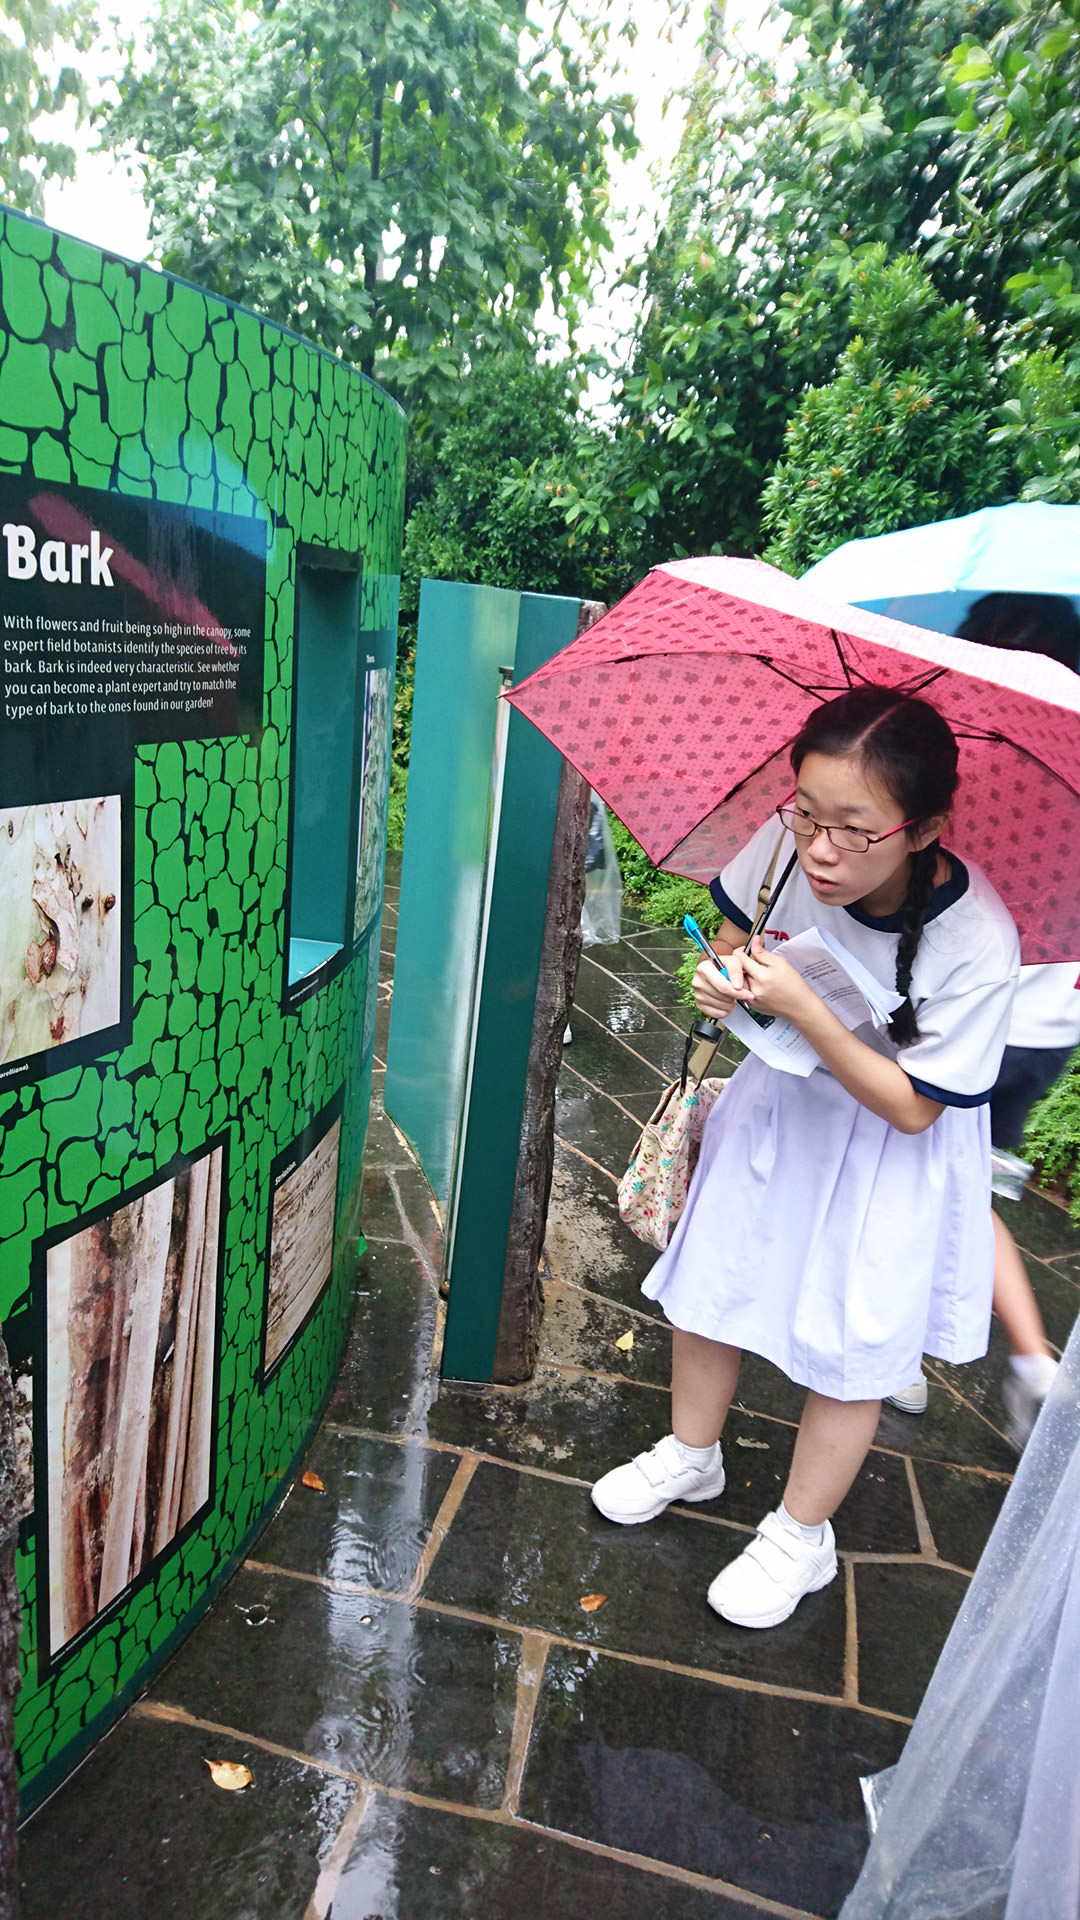 Sec-3-CnME-Learning-about-the-bark-at-Garden-by-the-Bay.jpg